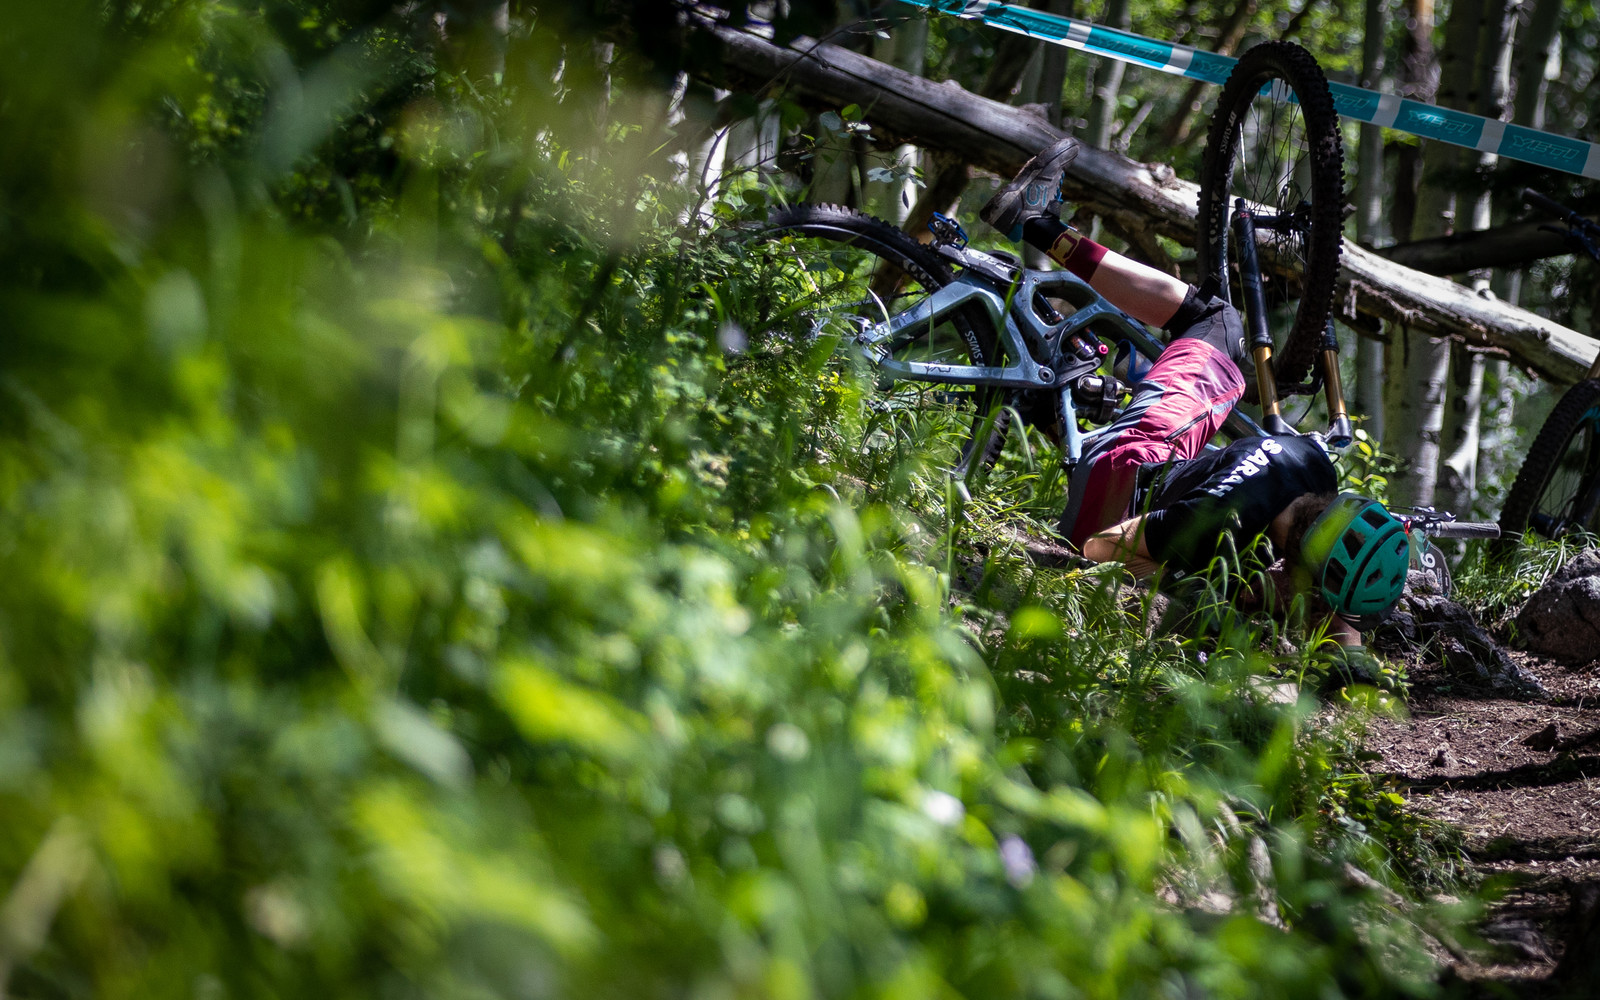 Unfortunately the backcountry single track took some victims, fortunately, Sarah Smith picked herself up and kept charging after this mishap.